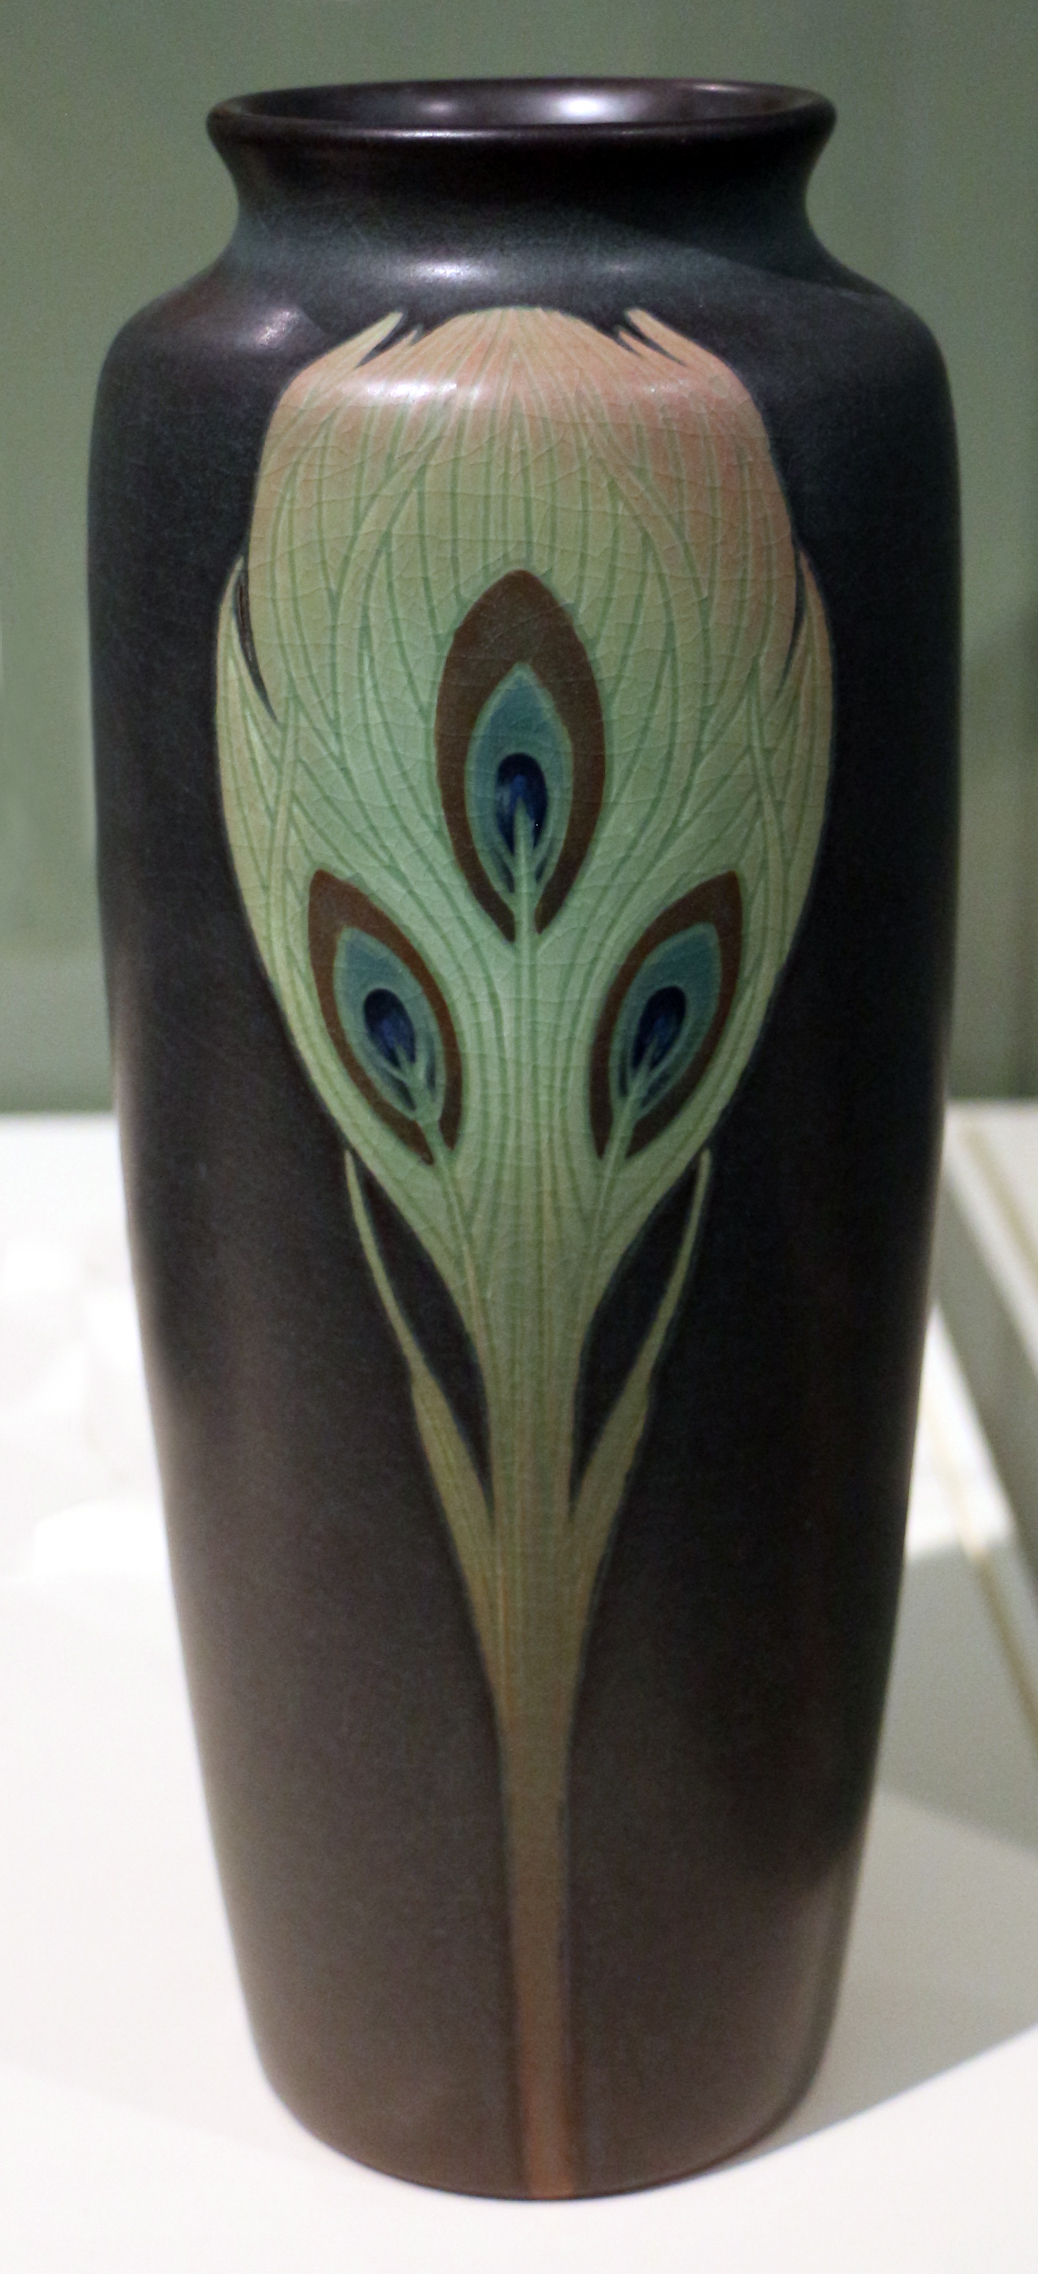 Dating rookwood pottery